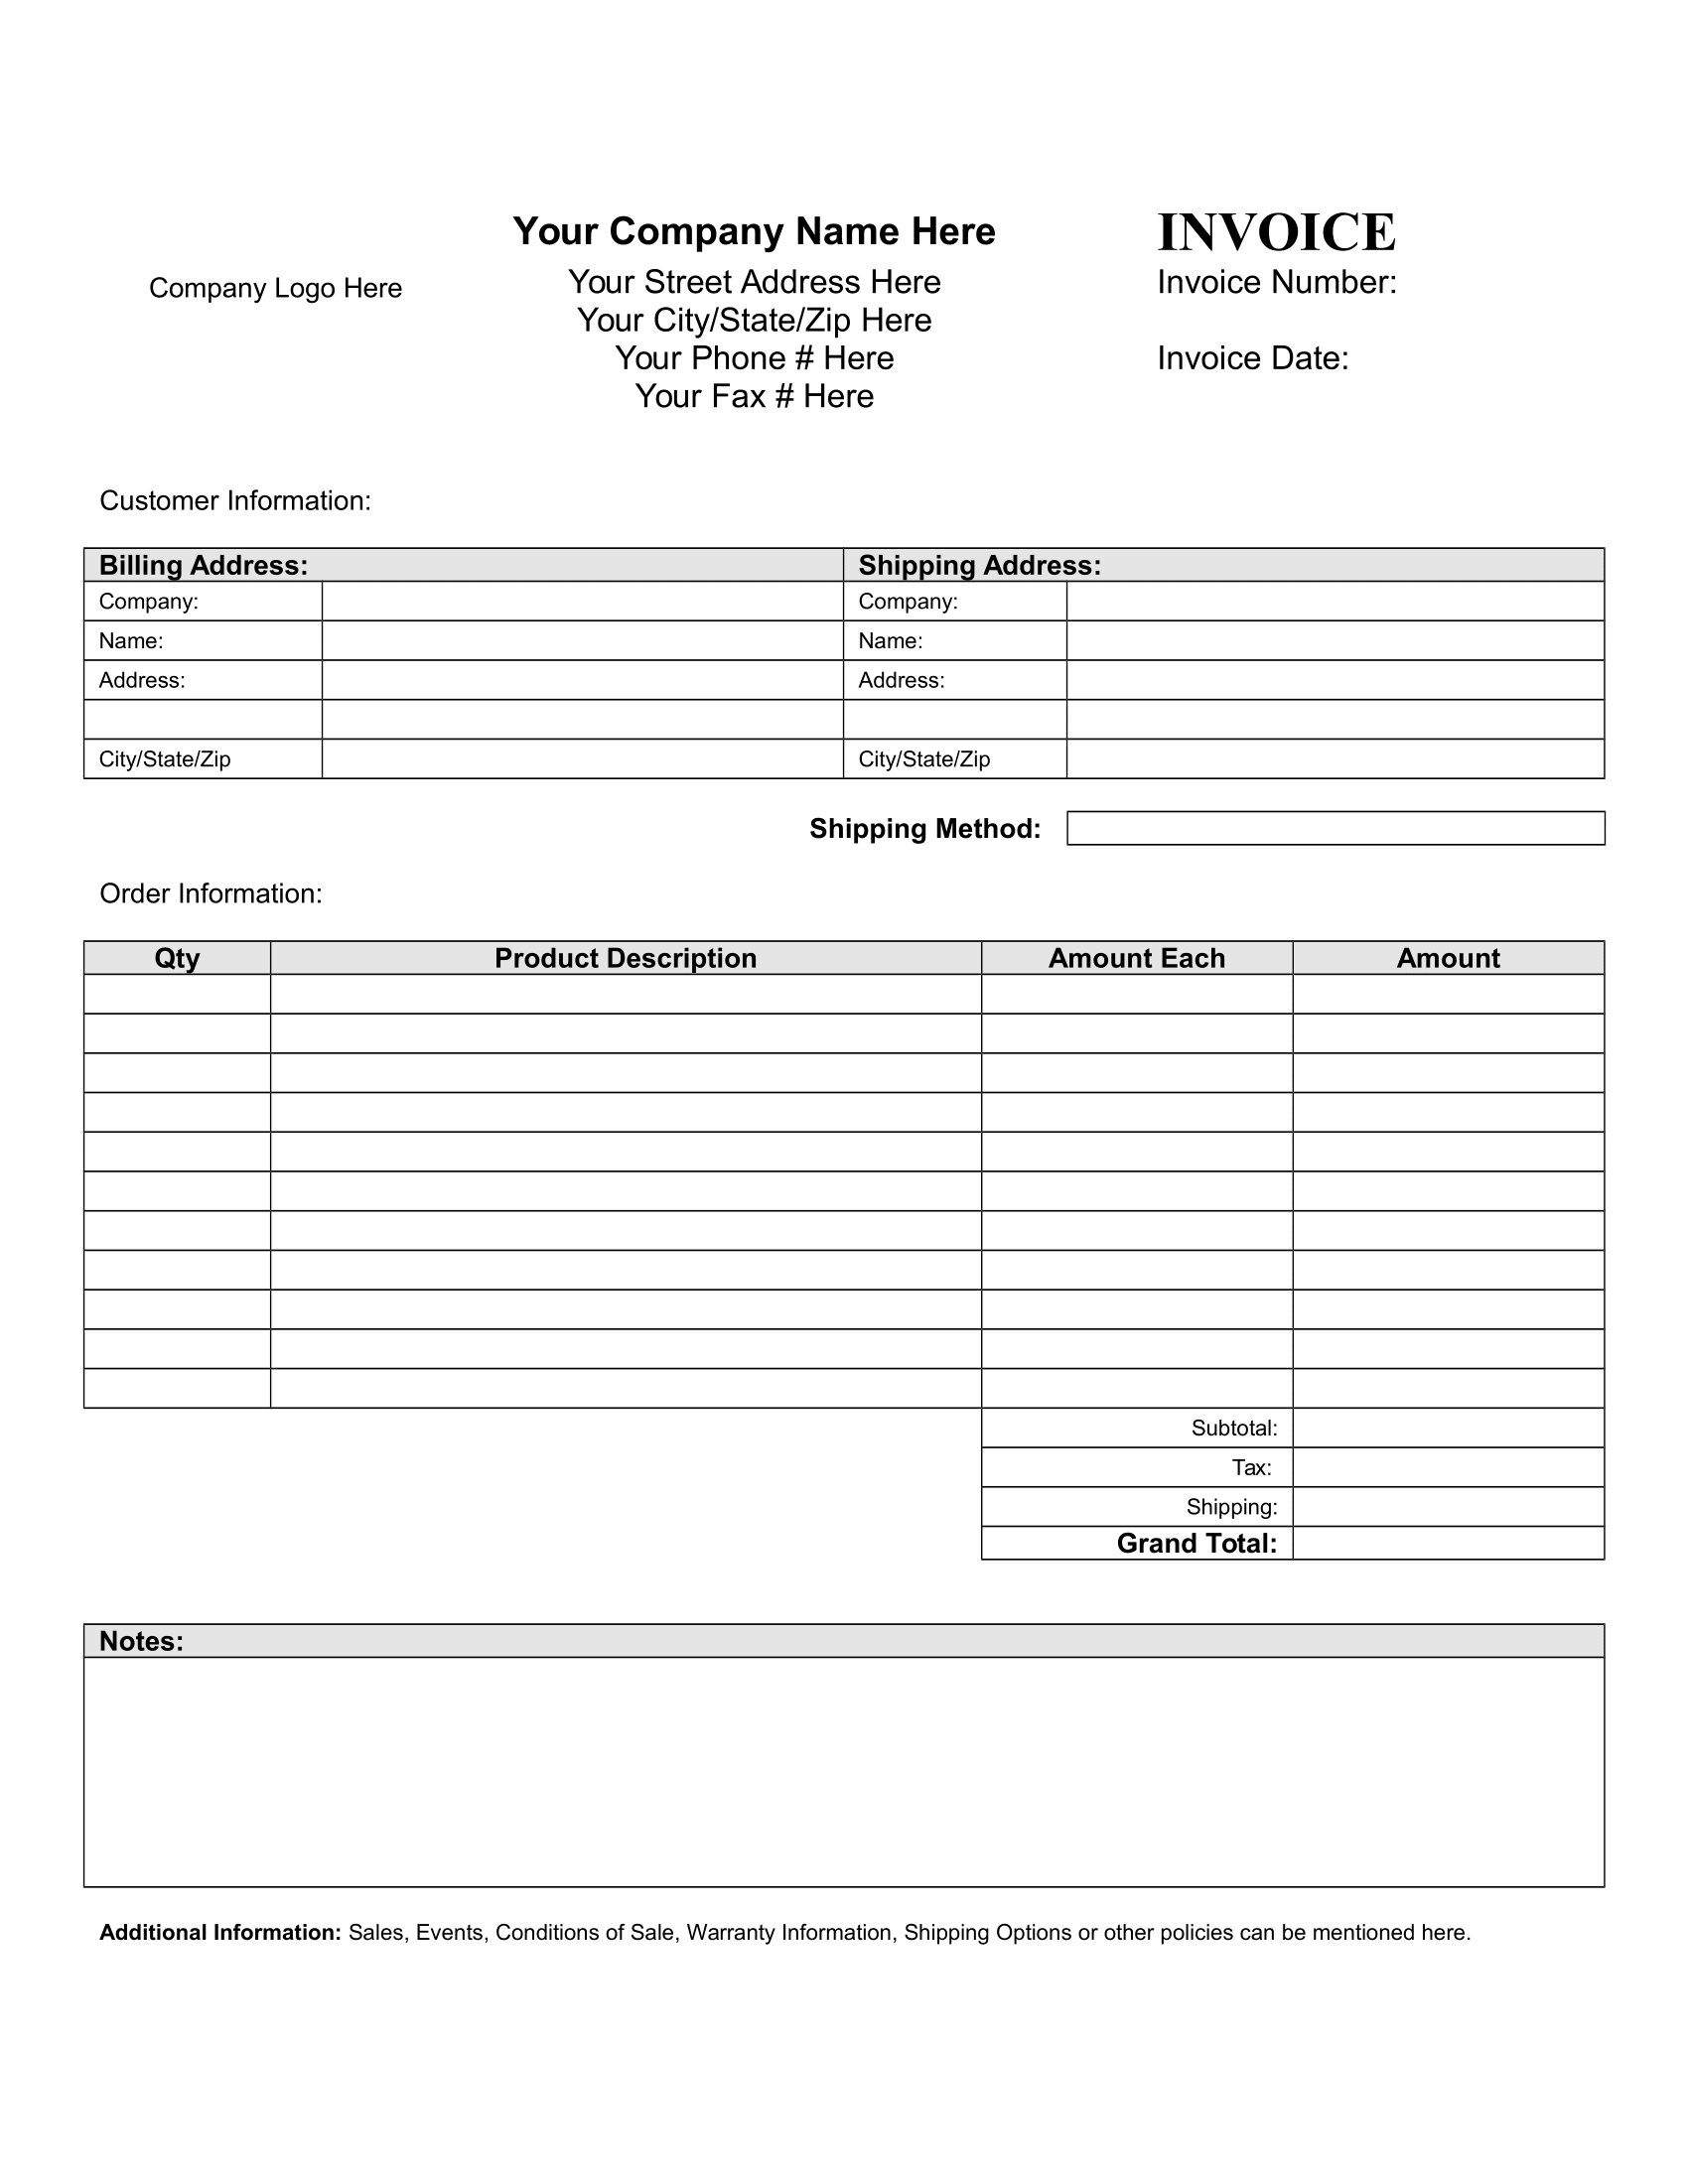 Blank Invoice Form – Download FREE Template